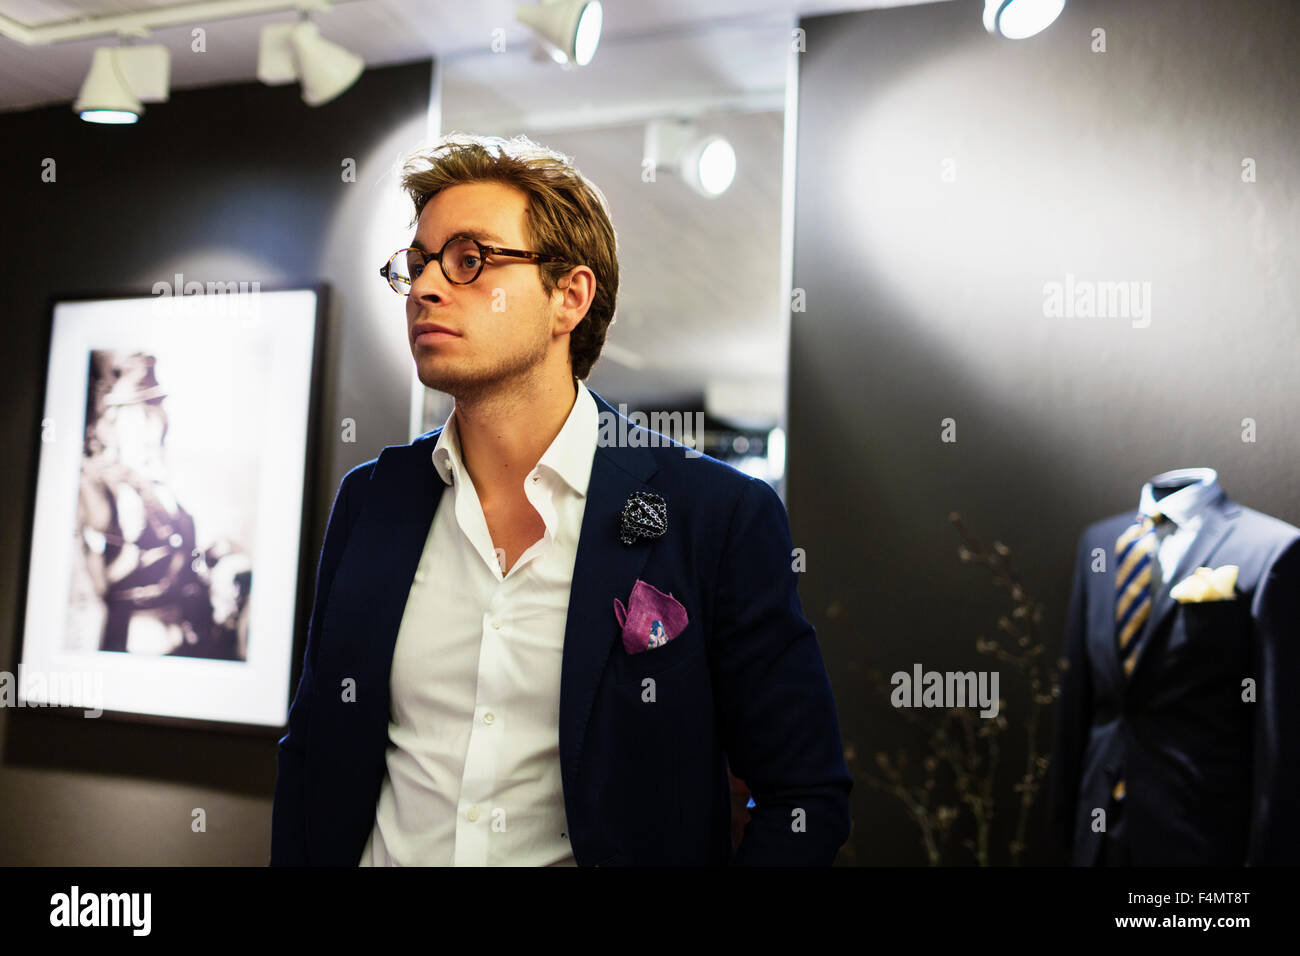 Thoughtful male designer standing in showroom - Stock Image